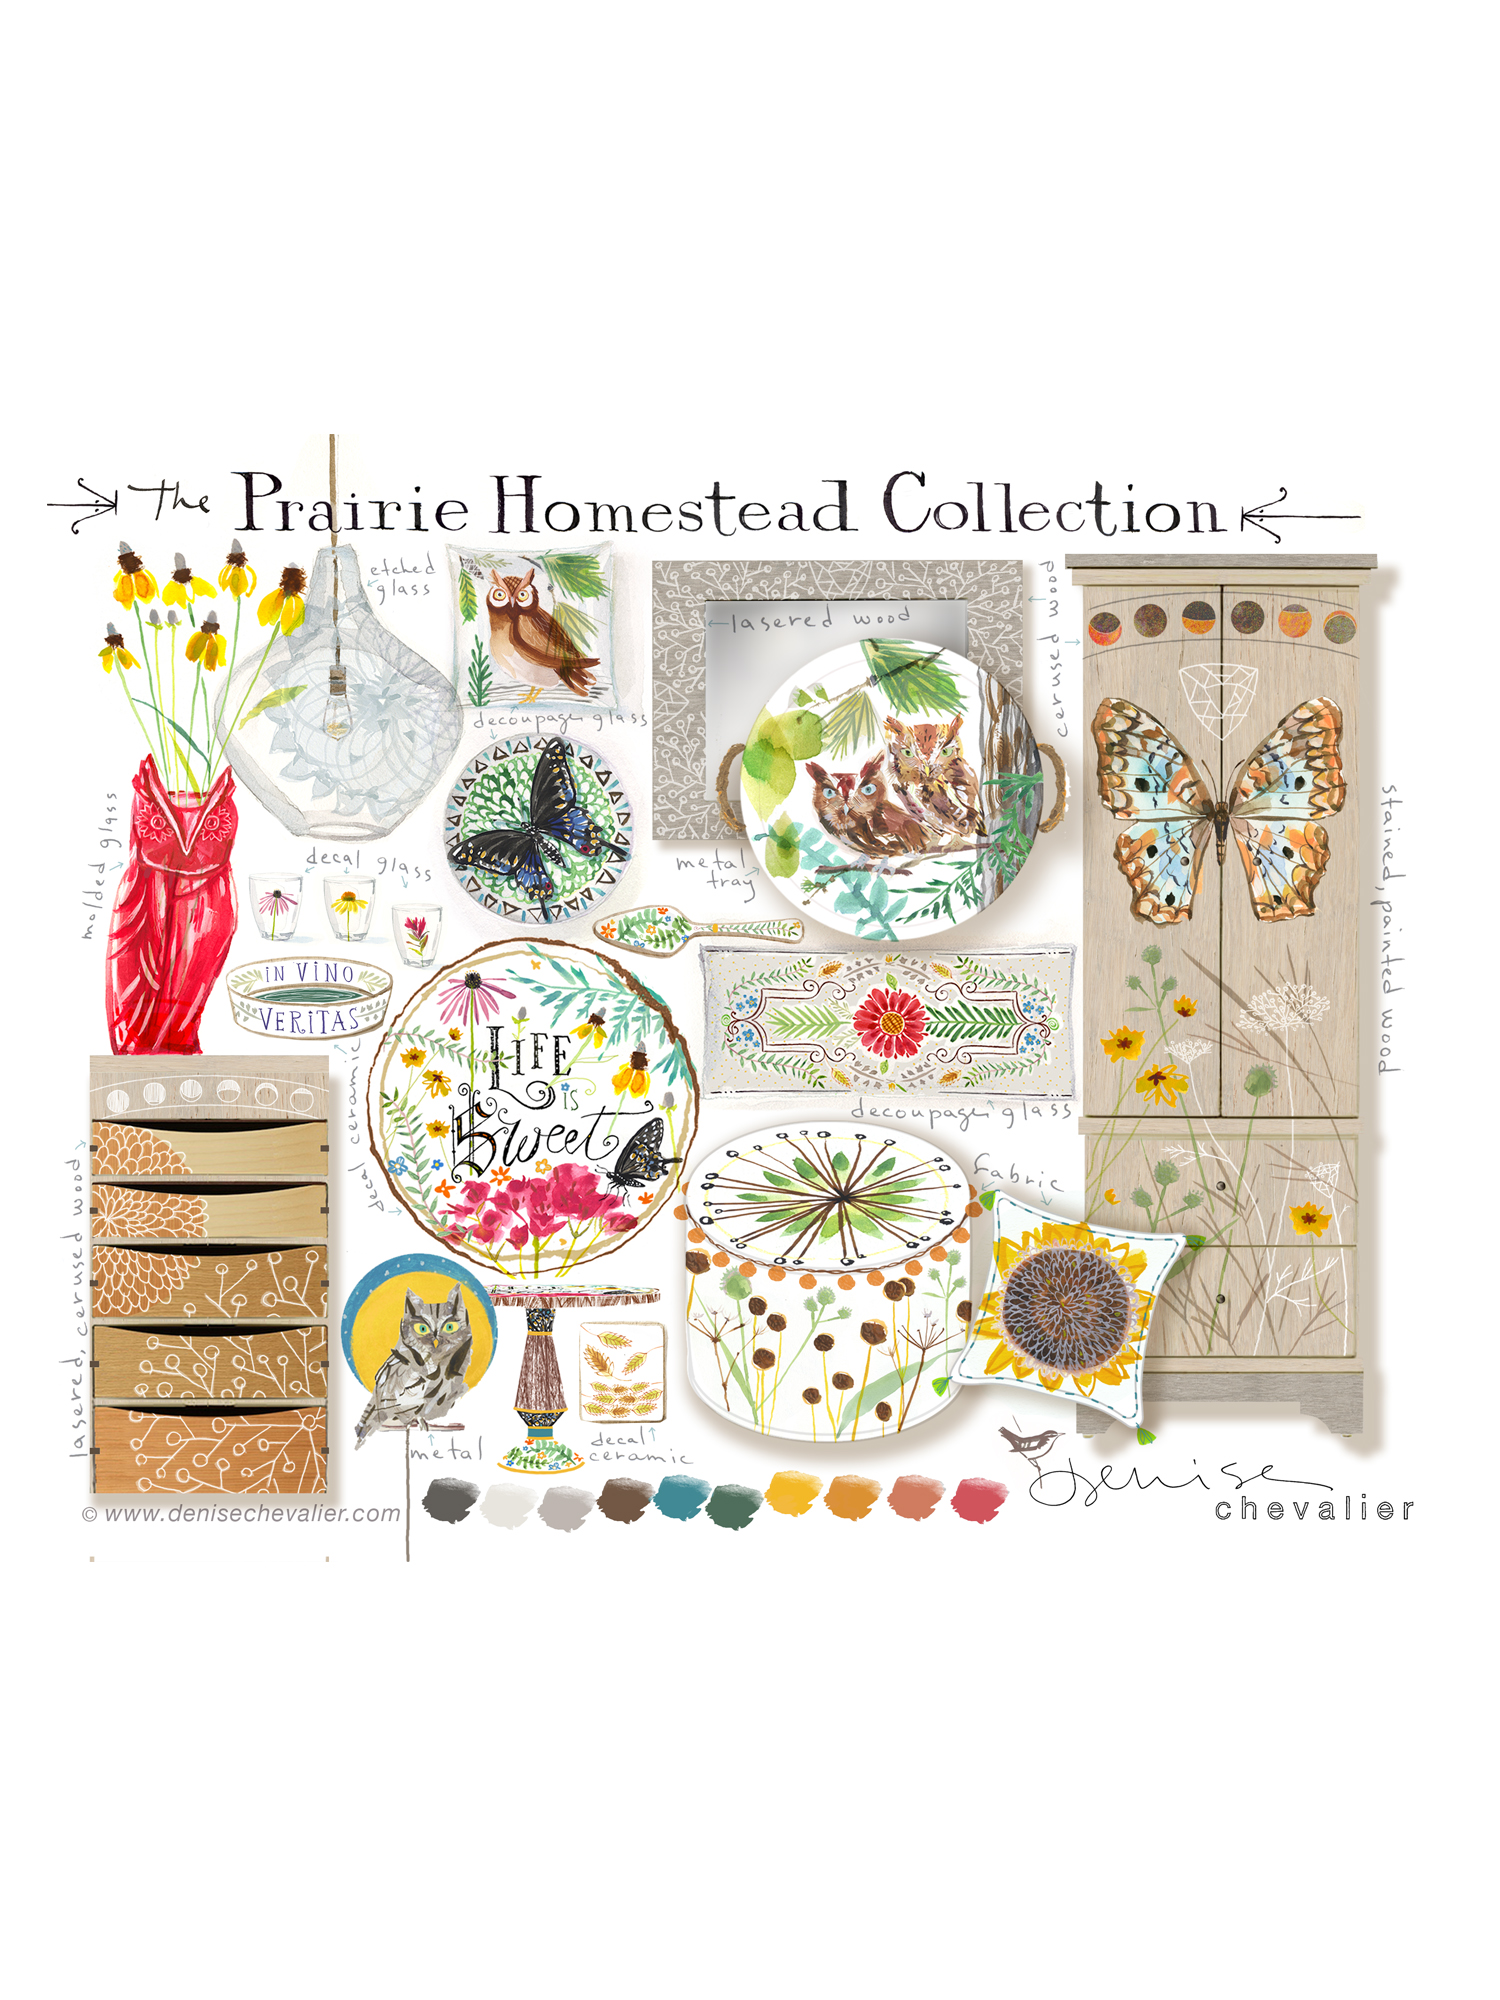 The Prairie Homestead Collection.jpg